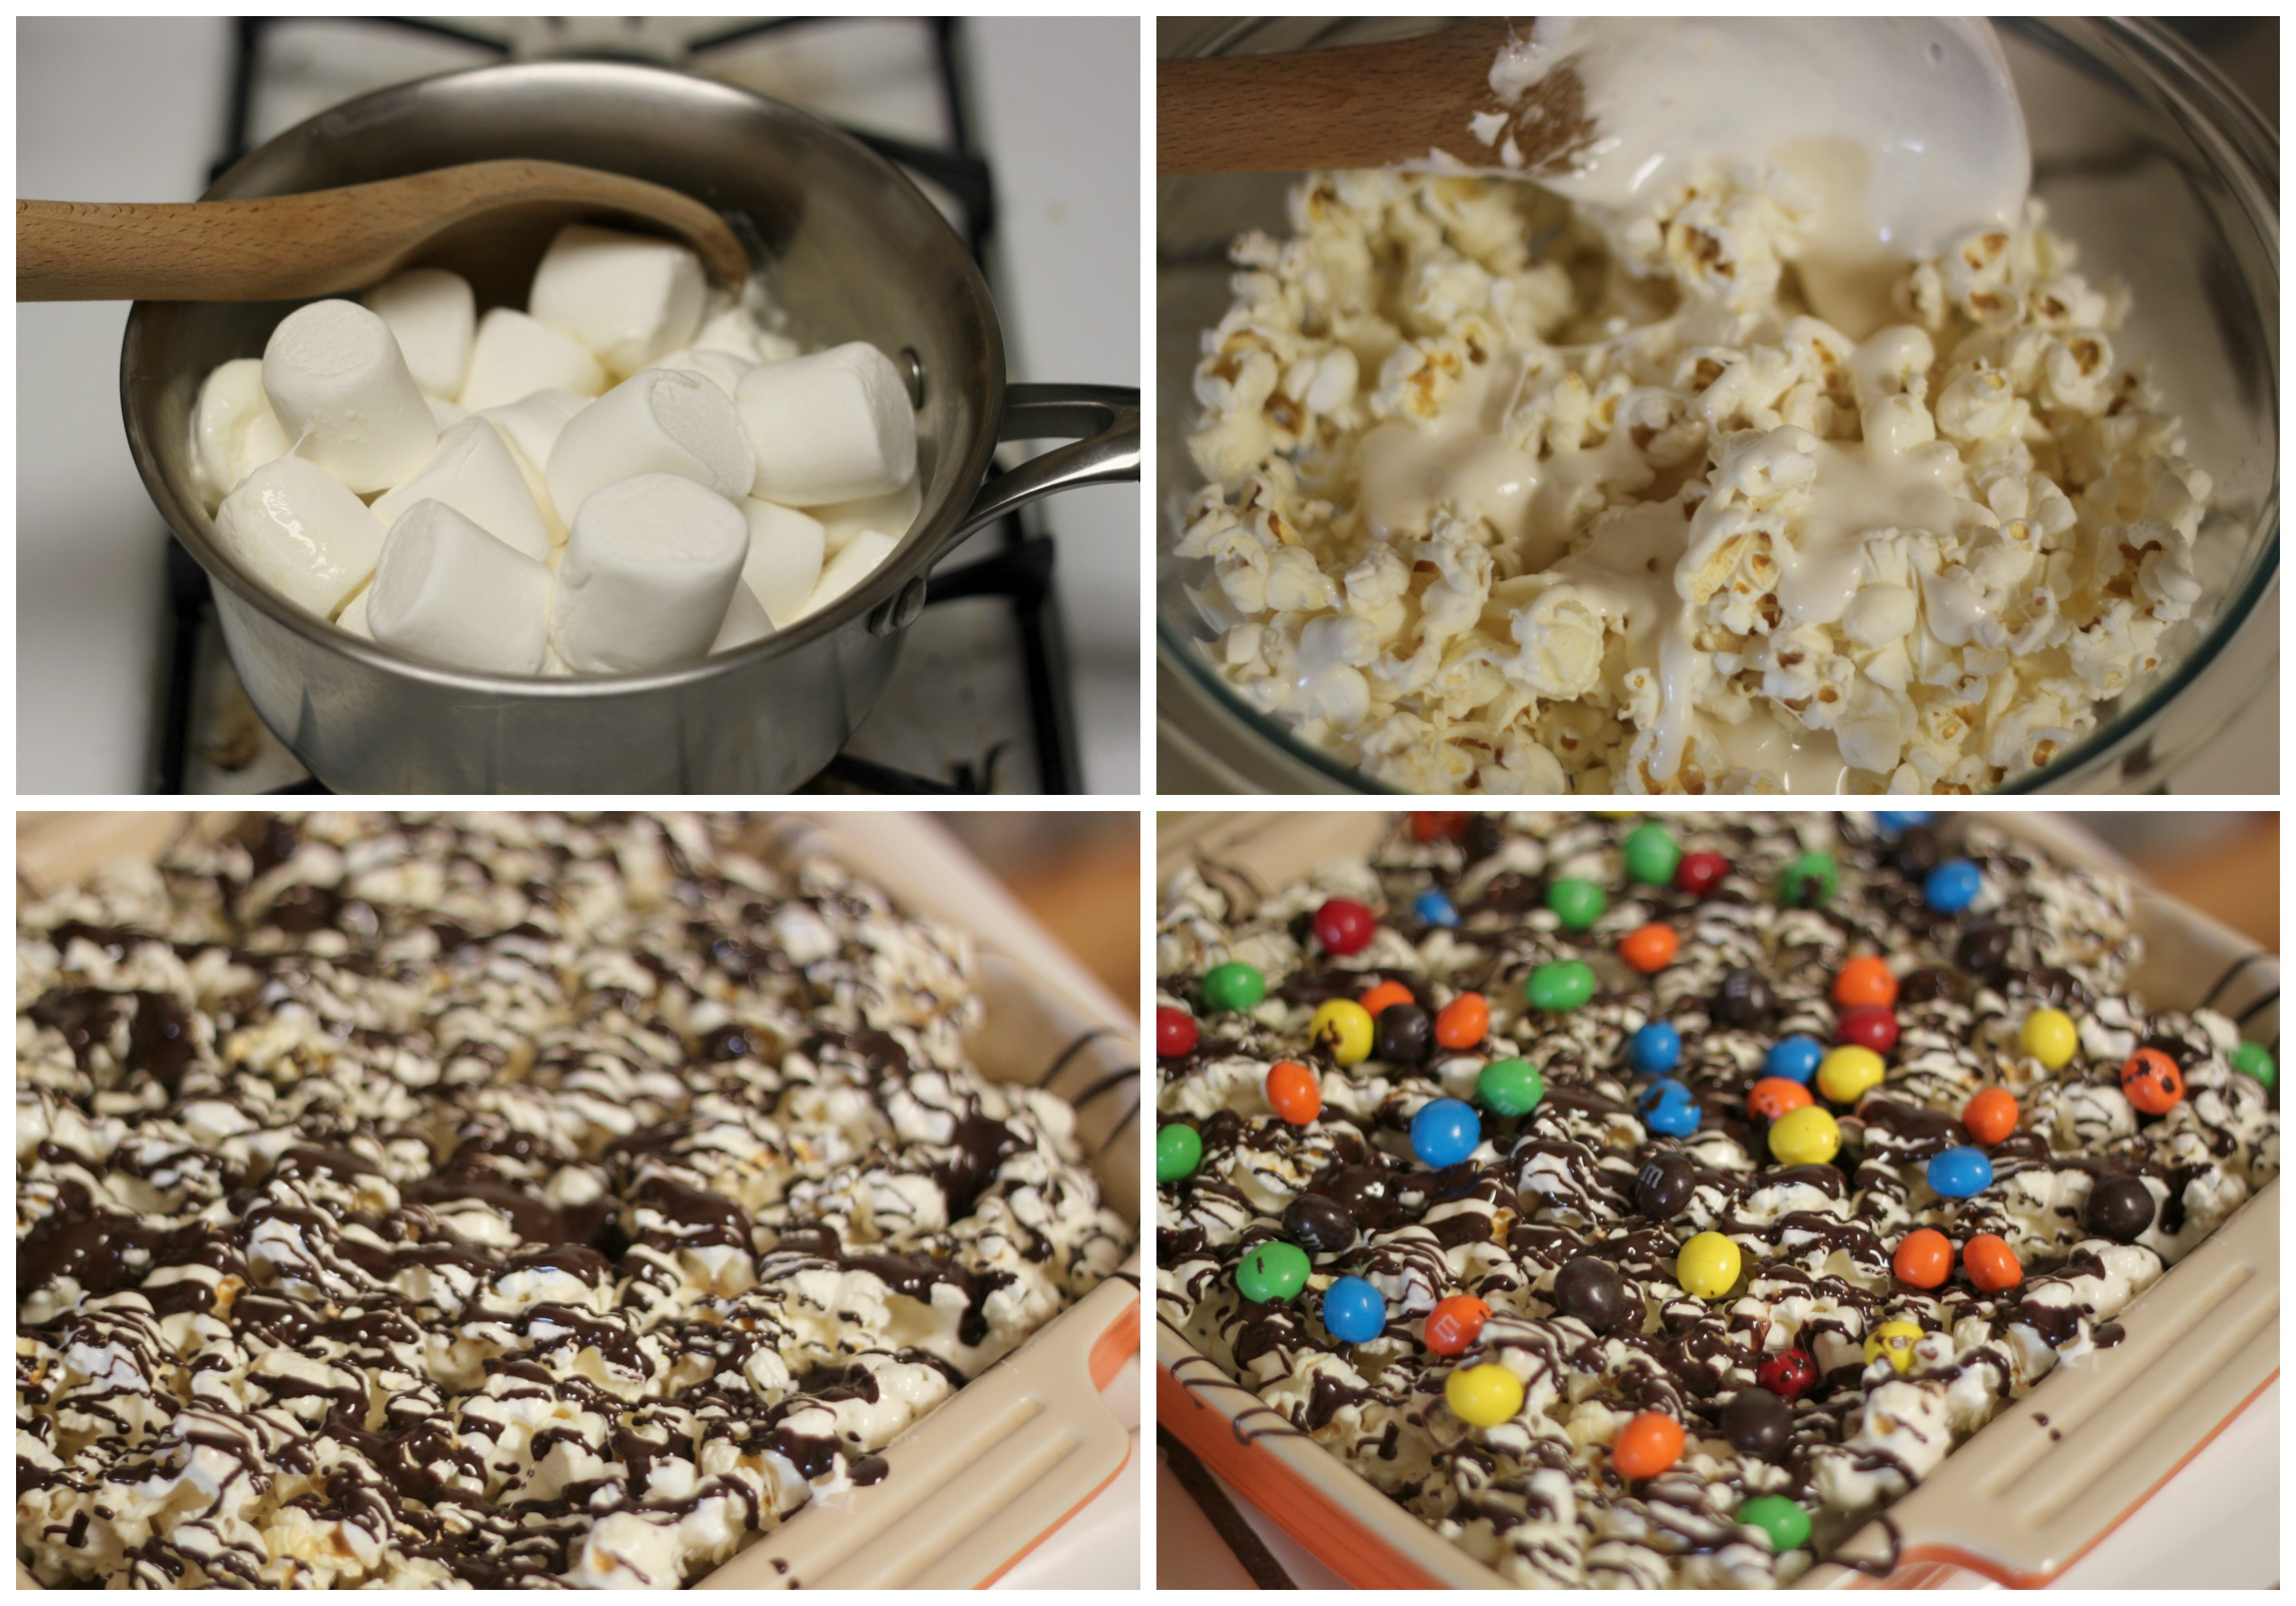 Melt marshmallows and butter together, then mix with popcorn. Press it into a buttered dish, drizzle with chocolate, M&M'S, and sprinkles. That's it!